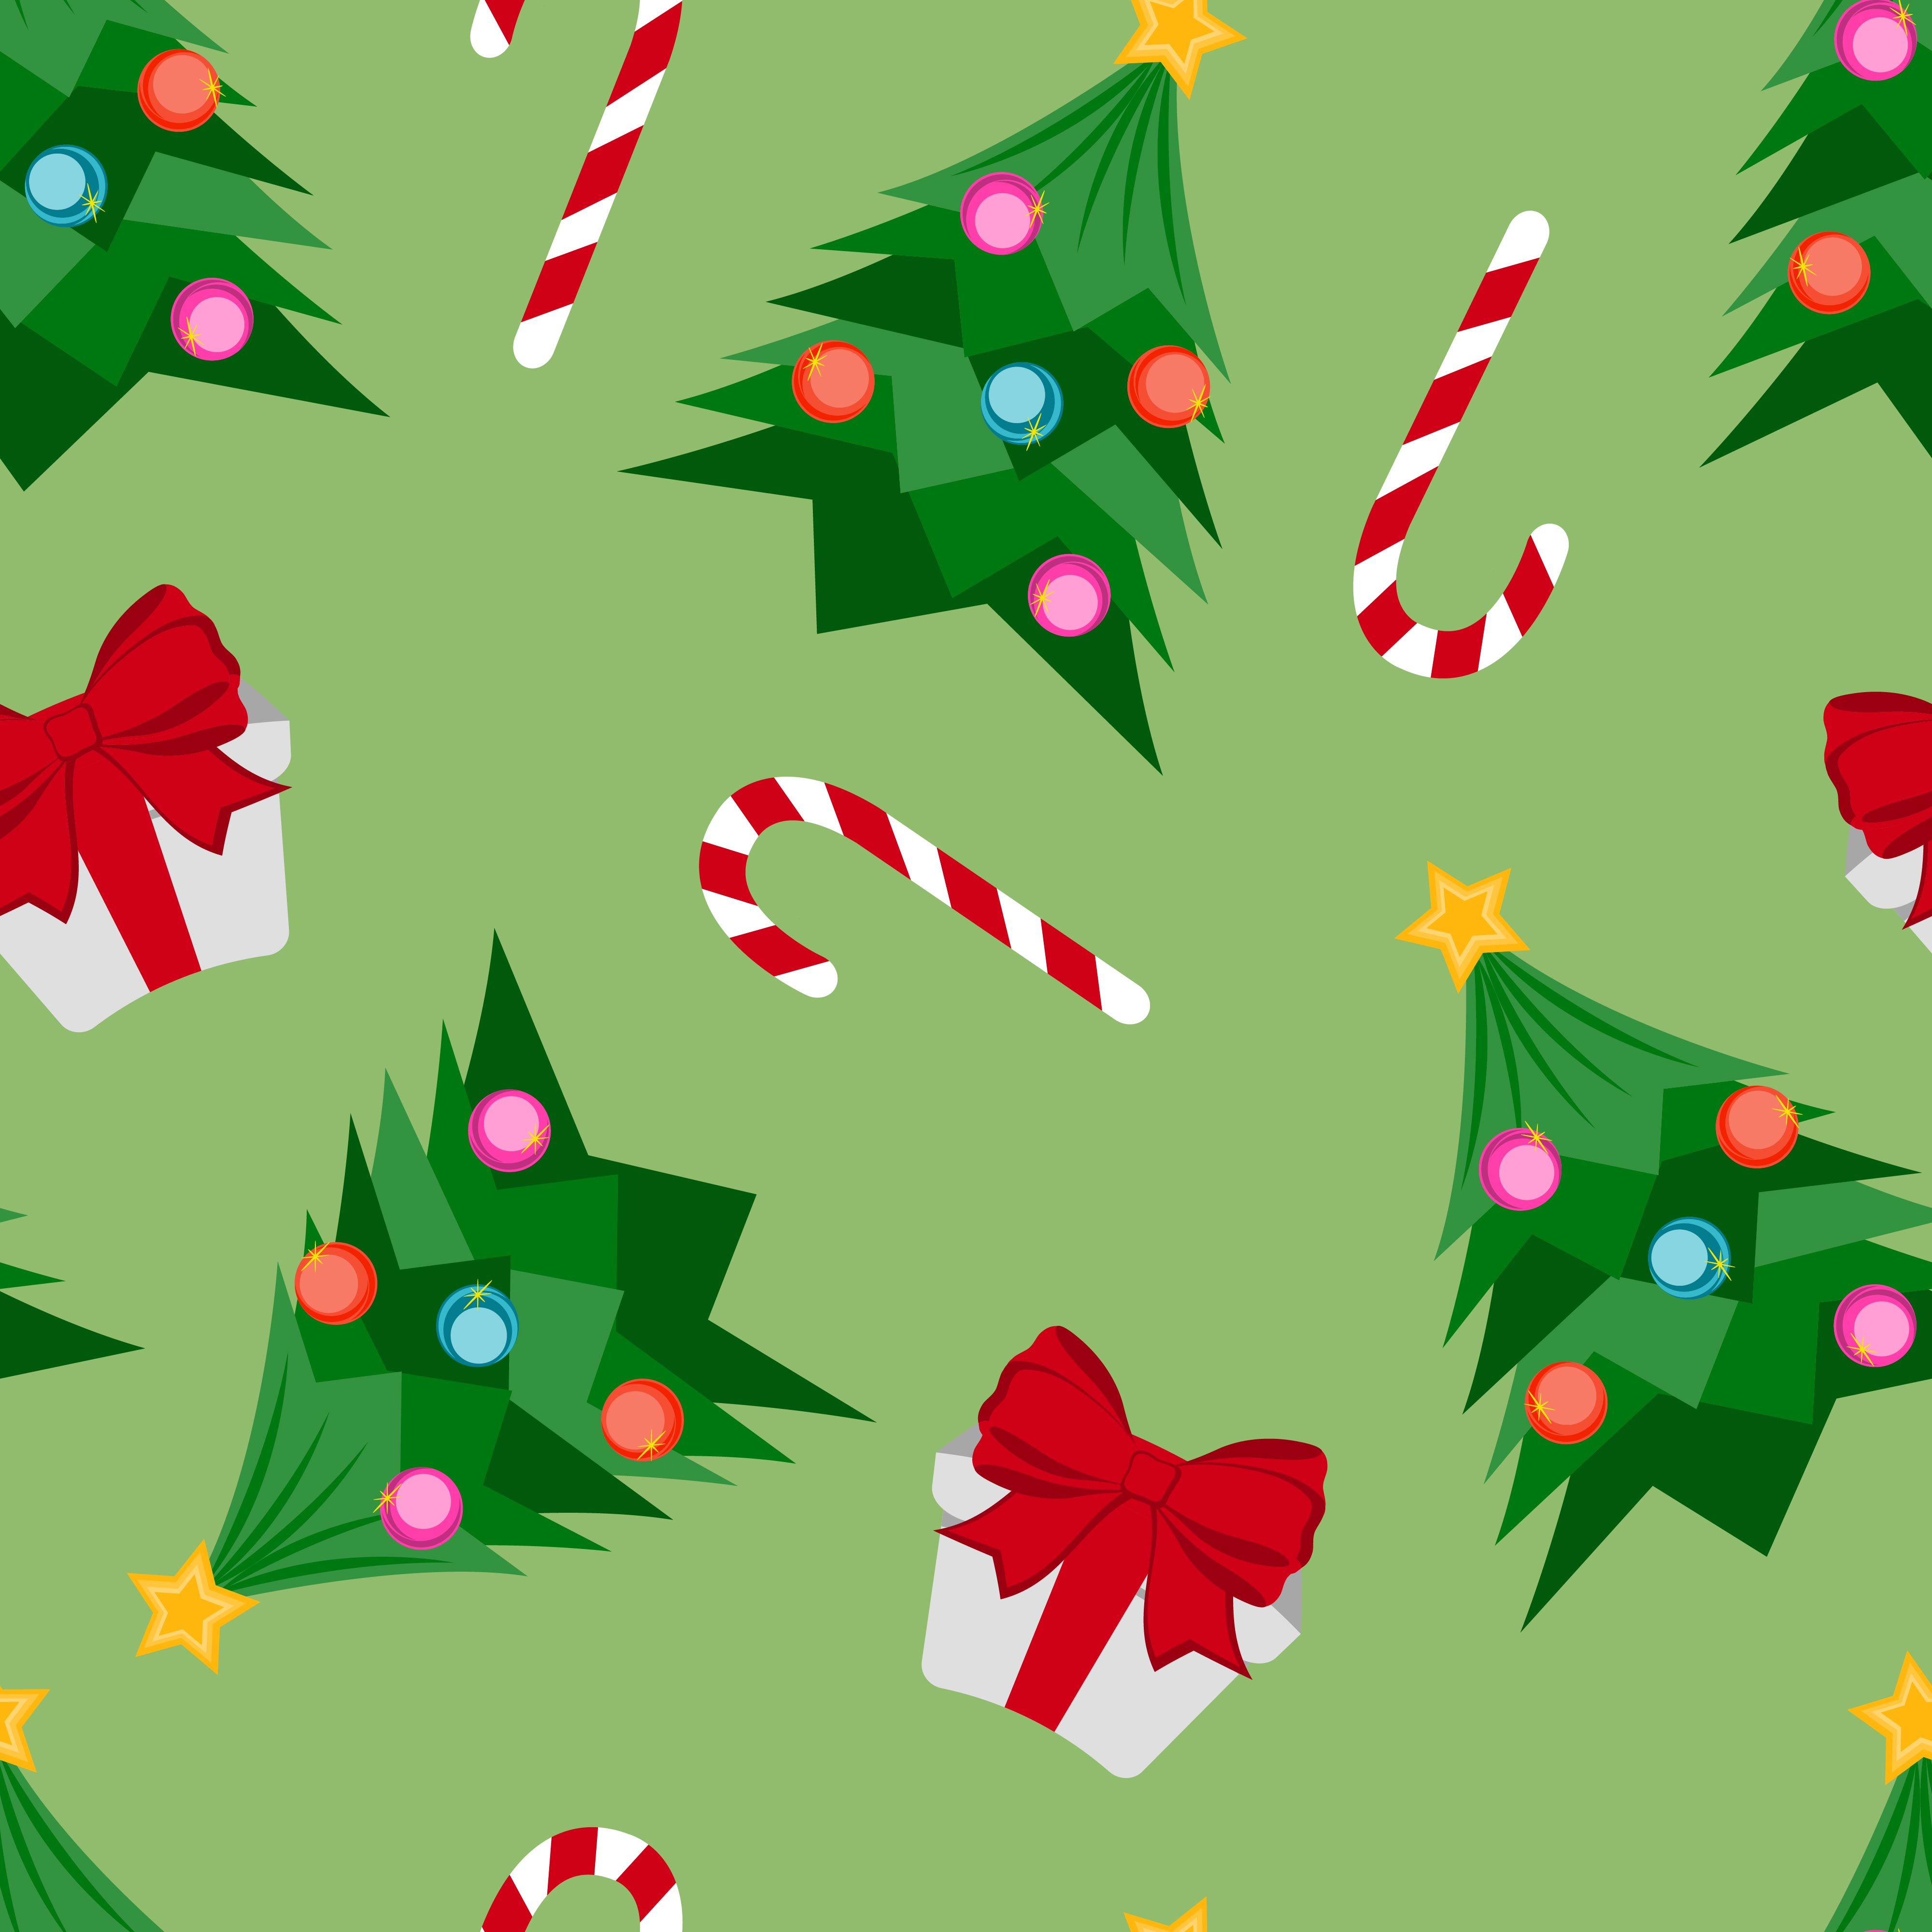 Christmas Tree Gift And Candy Cane Pattern Download Free Vectors Clipart Graphics Vector Art